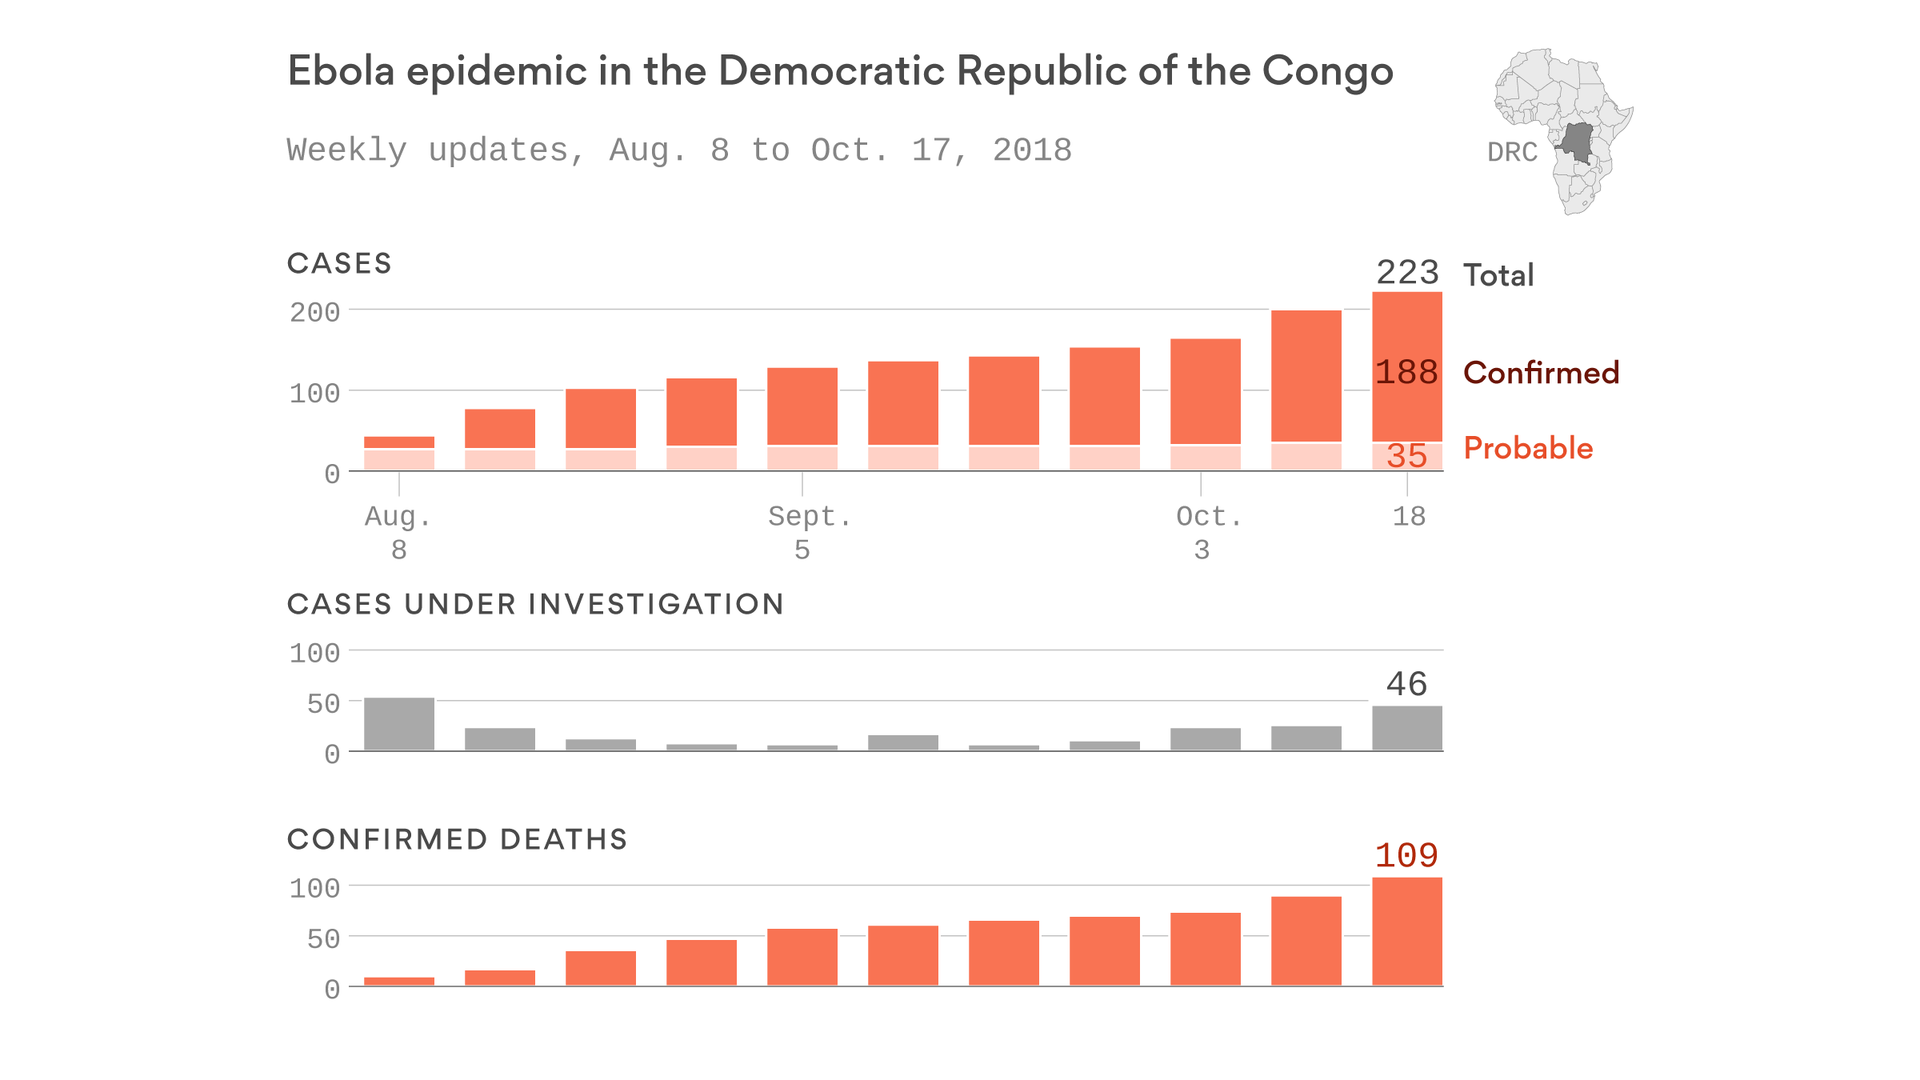 Conflict hampers efforts to contain Ebola outbreak in the Congo